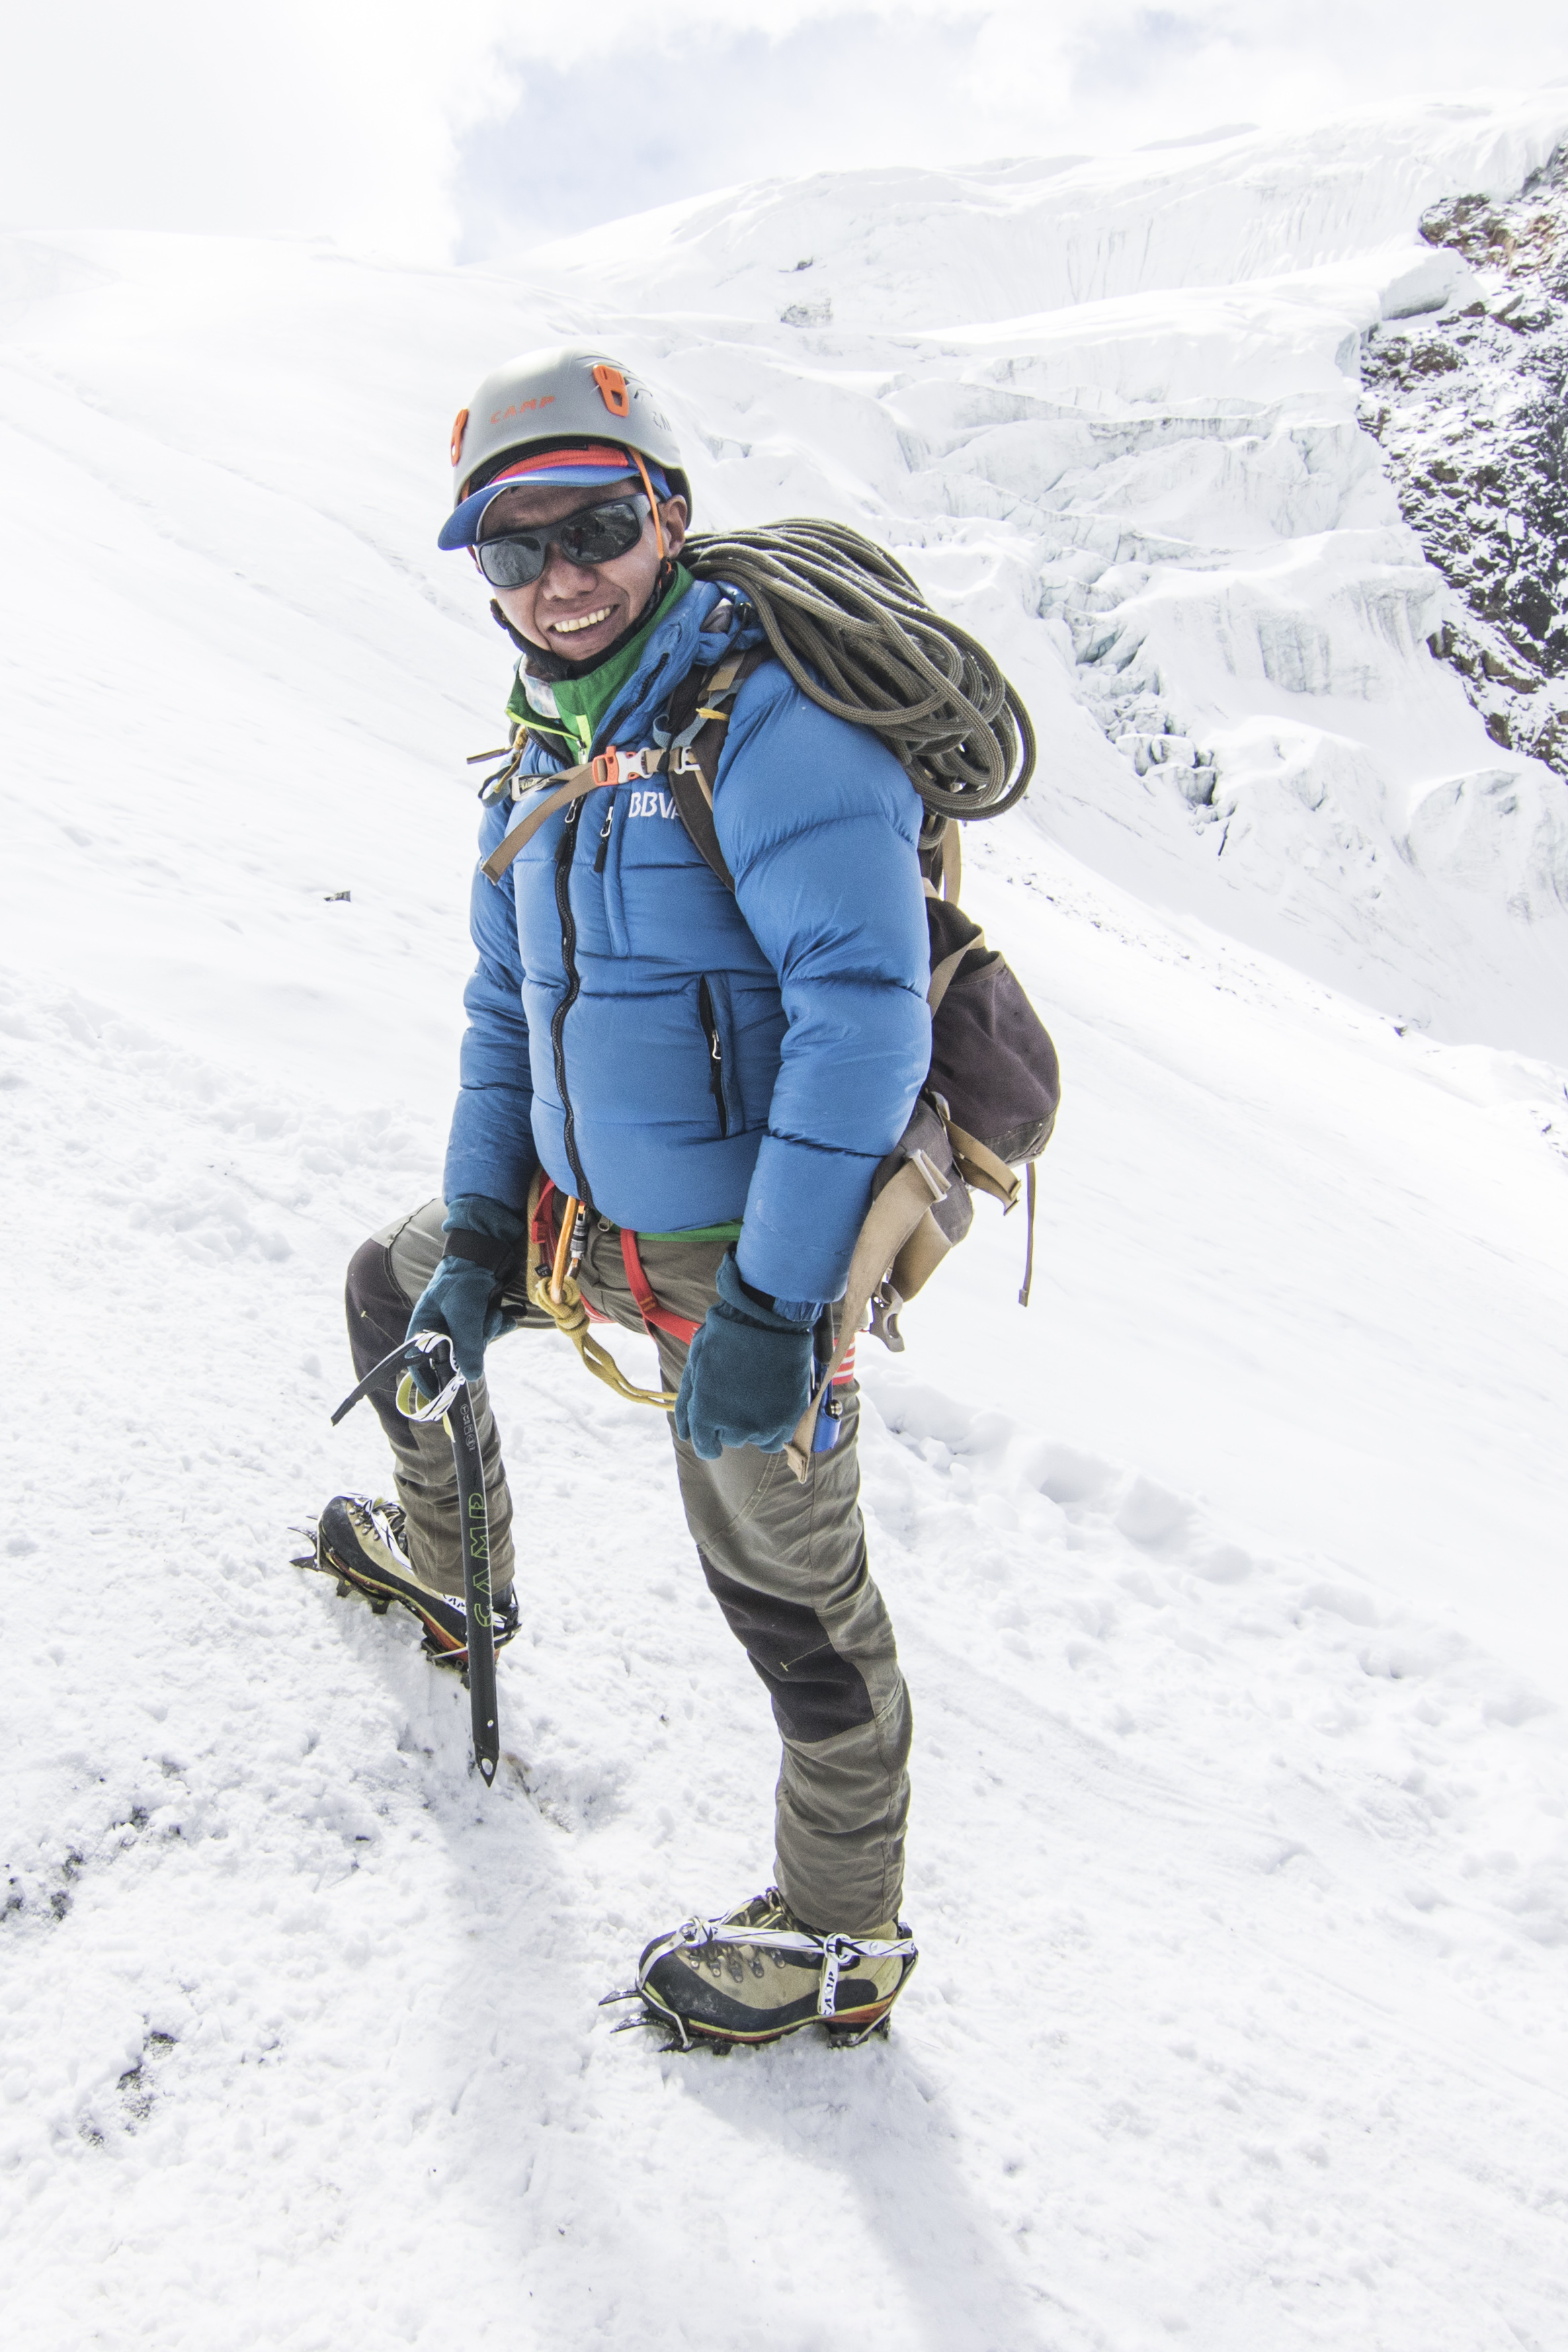 AWExpeditions friend & many-time climbing sirdar Mingma Sherpa is all smiles in his new  CAMP  gear - crampons, ice axe, helmet & harness!